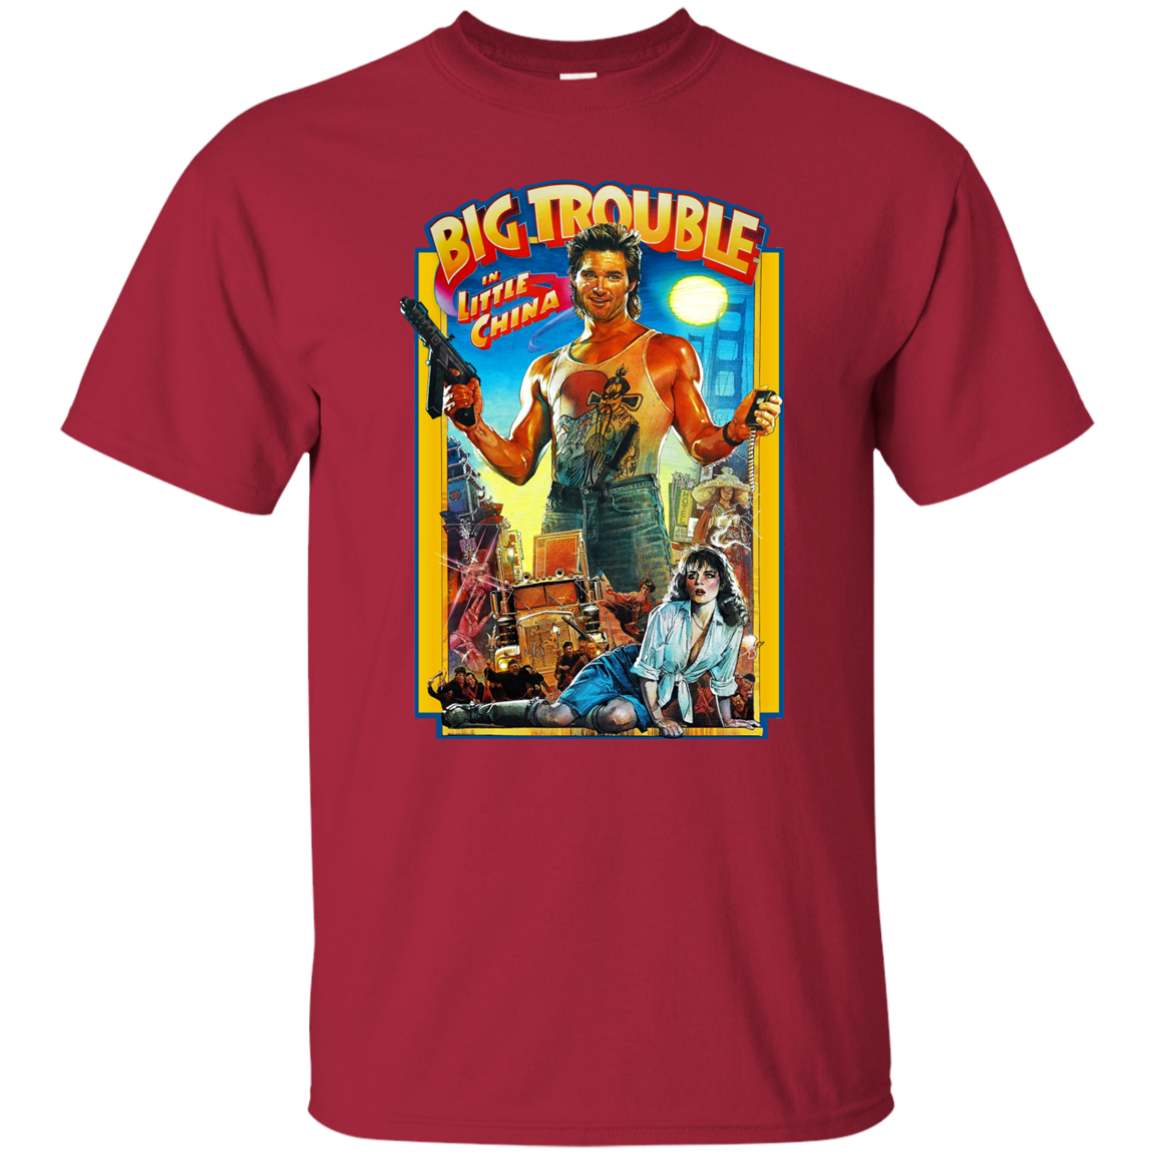 Big Trouble in Little China Kurt Russell Retro Martial Arts Kung Fu Action Harajuku Tops Fashion Classic Unique t Shirt in T Shirts from Men 39 s Clothing